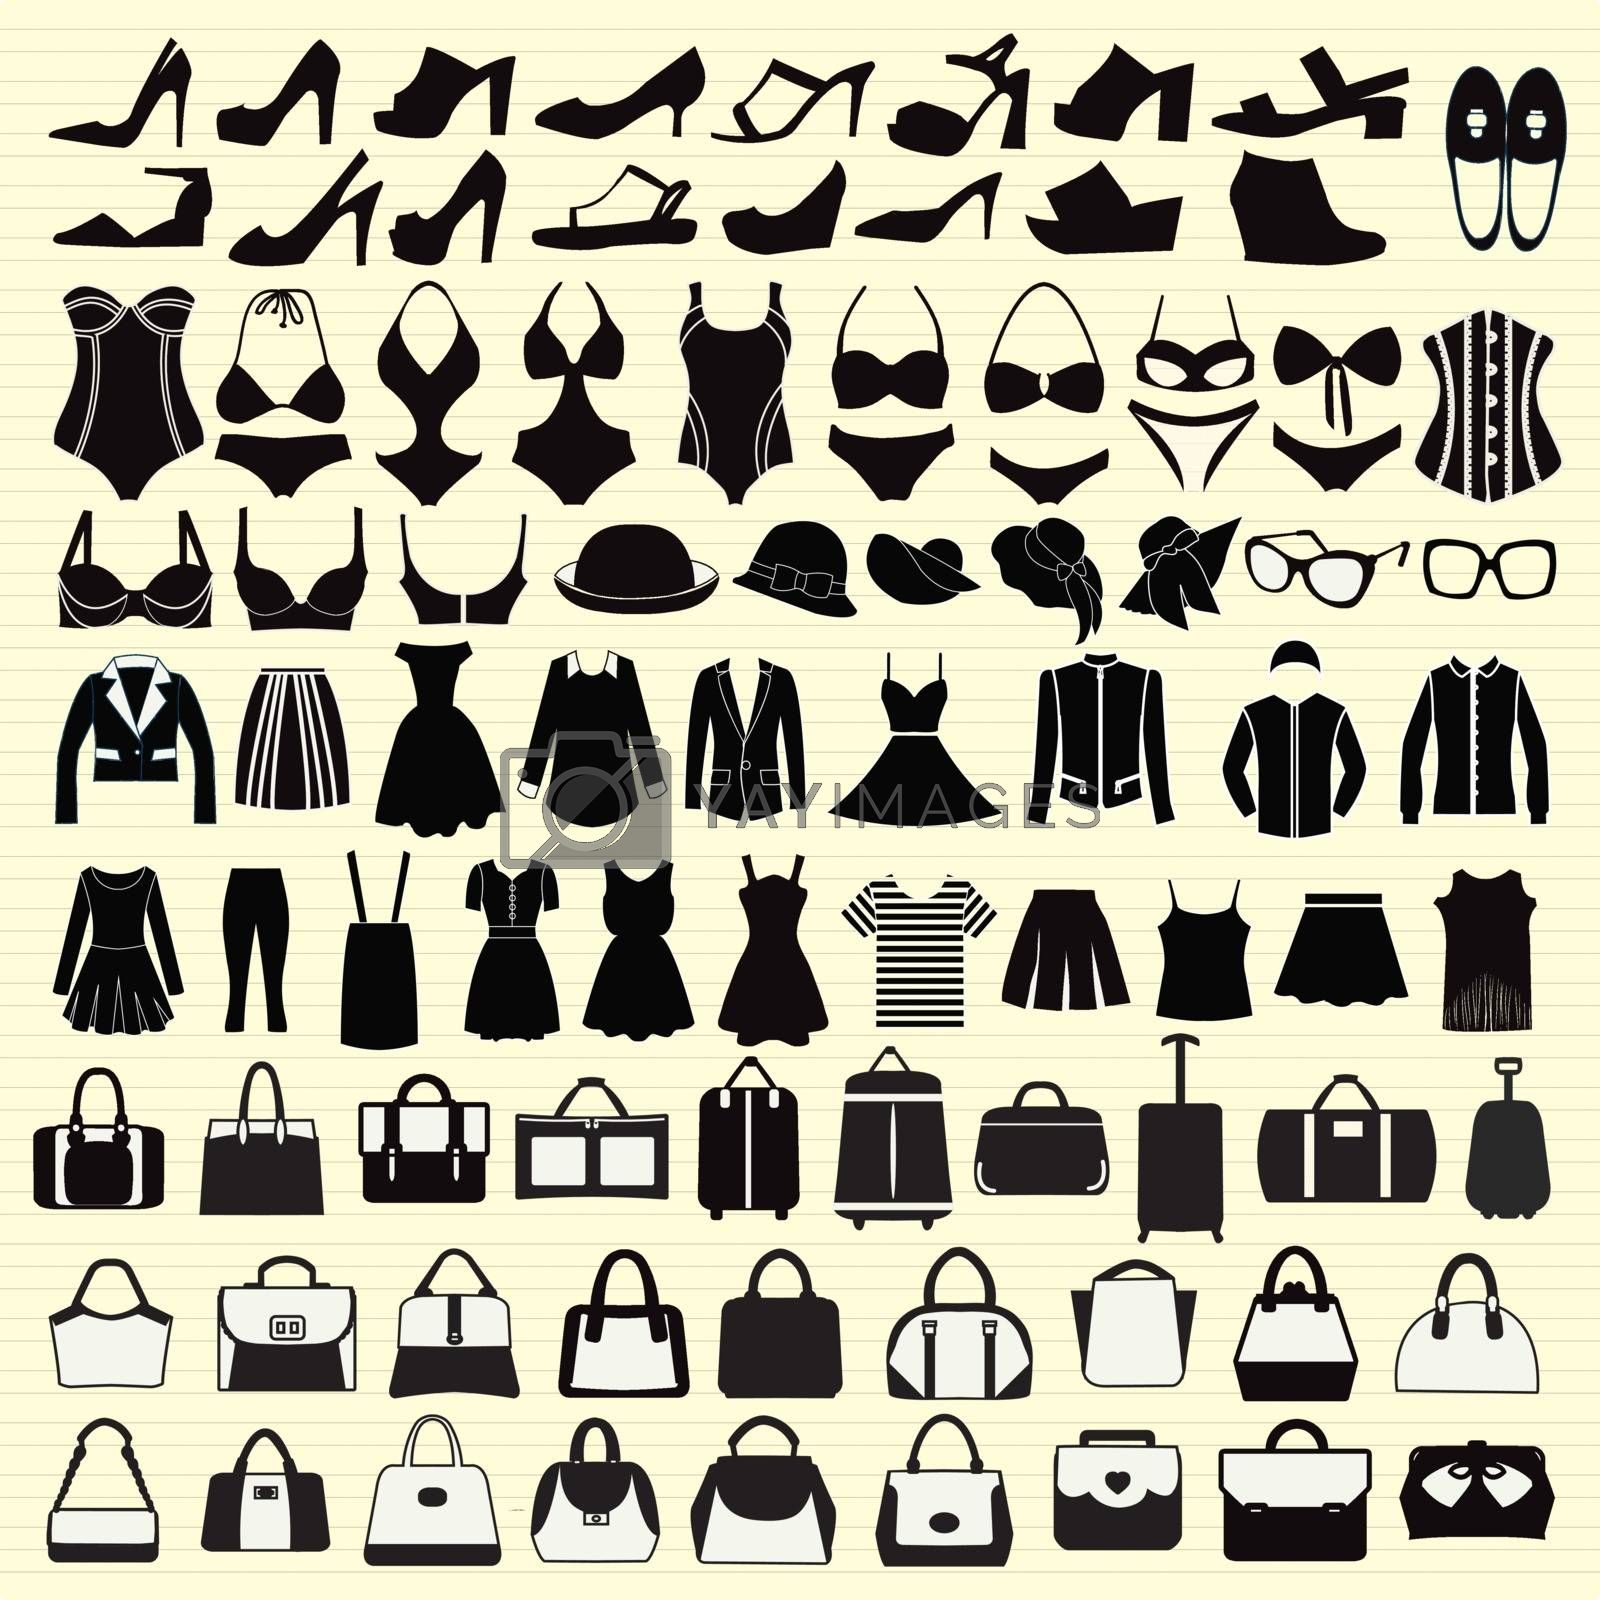 Vector icons set of Fashion woman clothing and accessories-illustration silhouette